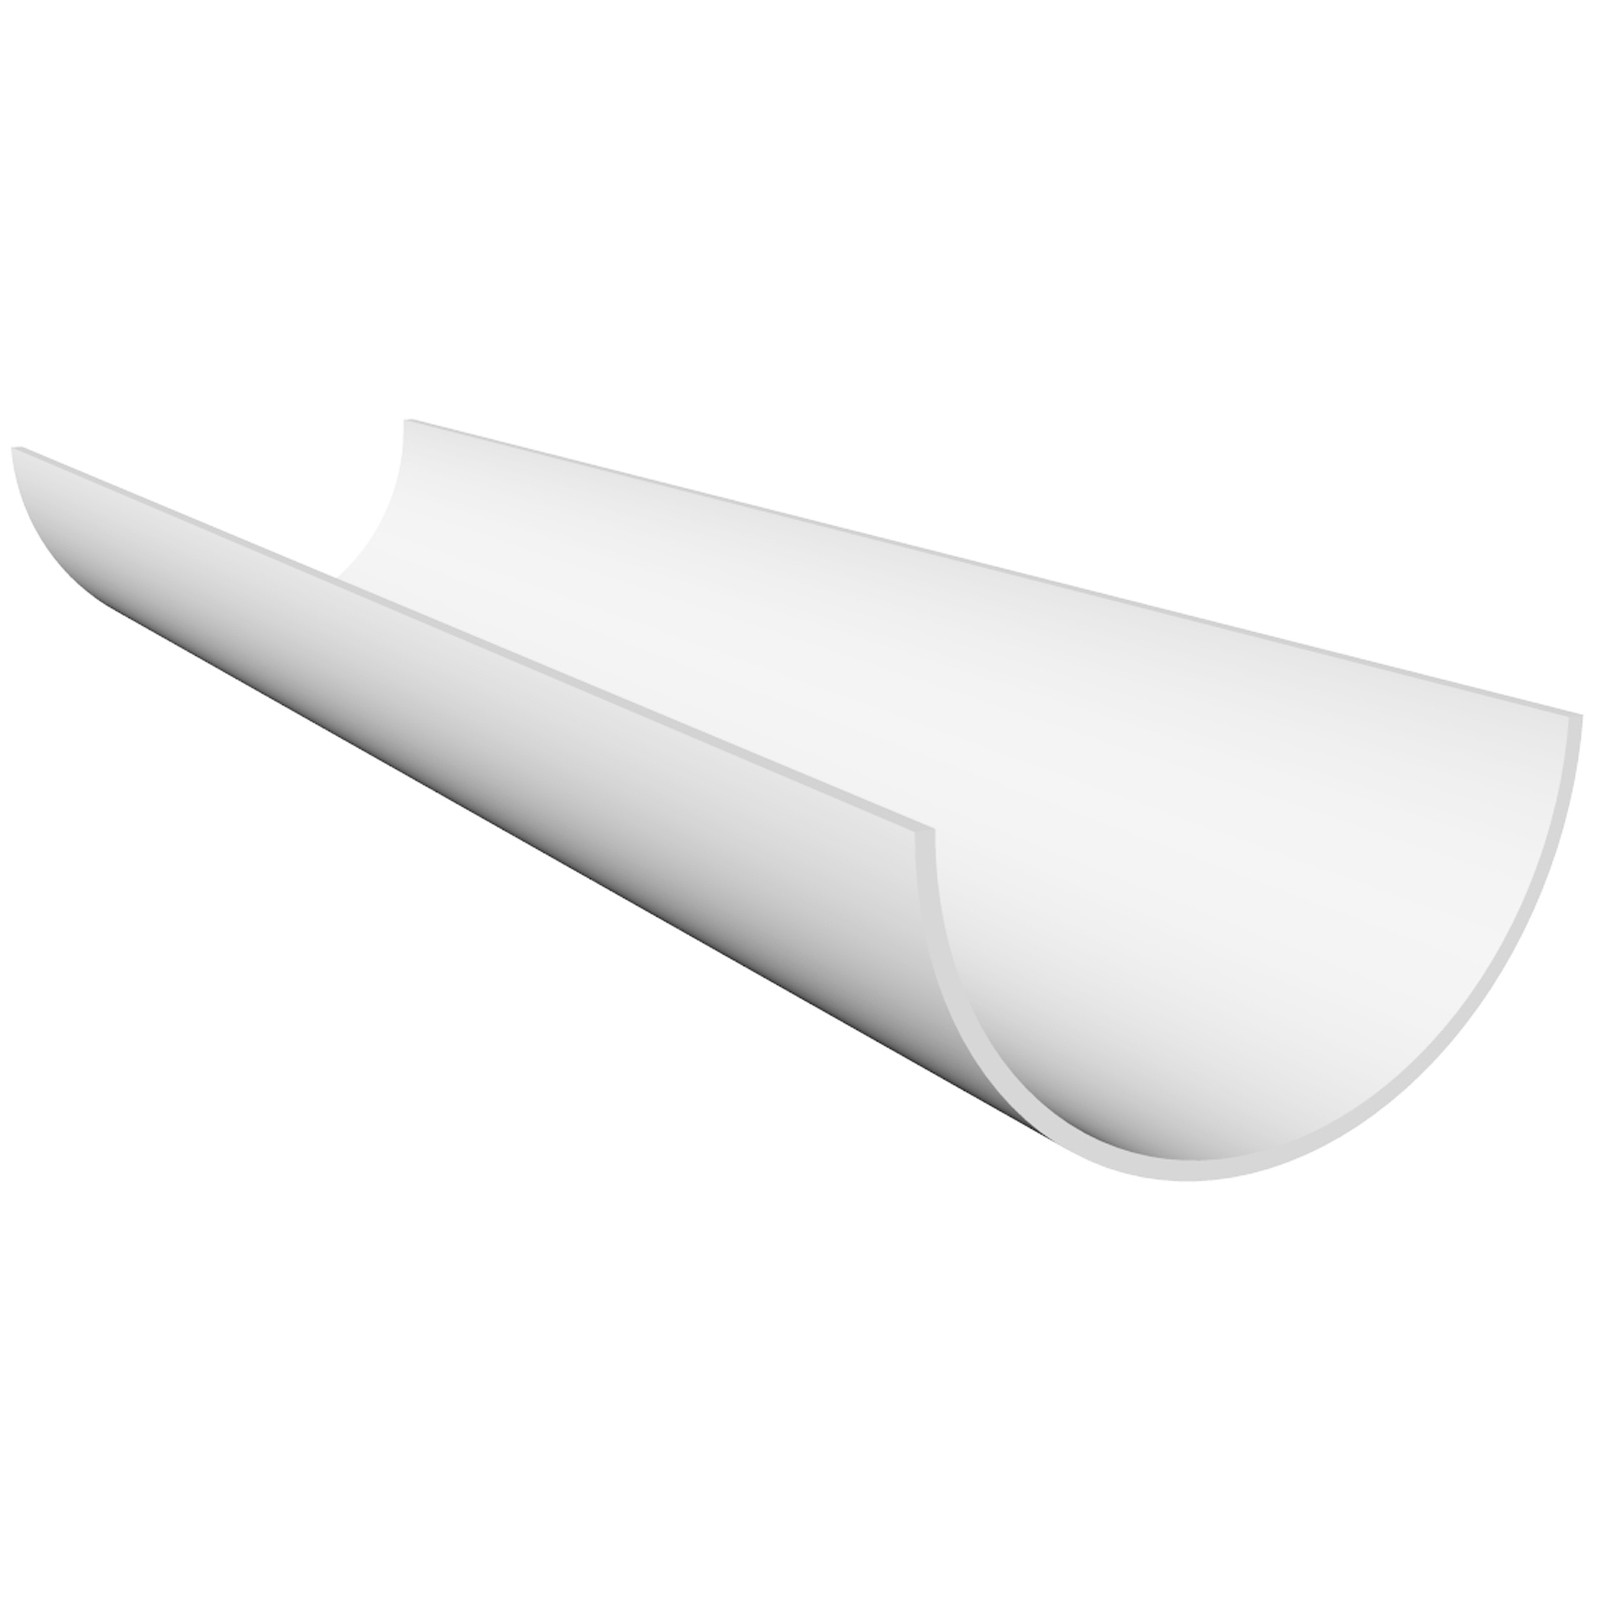 Freeflow 112mm Half Round Gutter - White, 4 metre